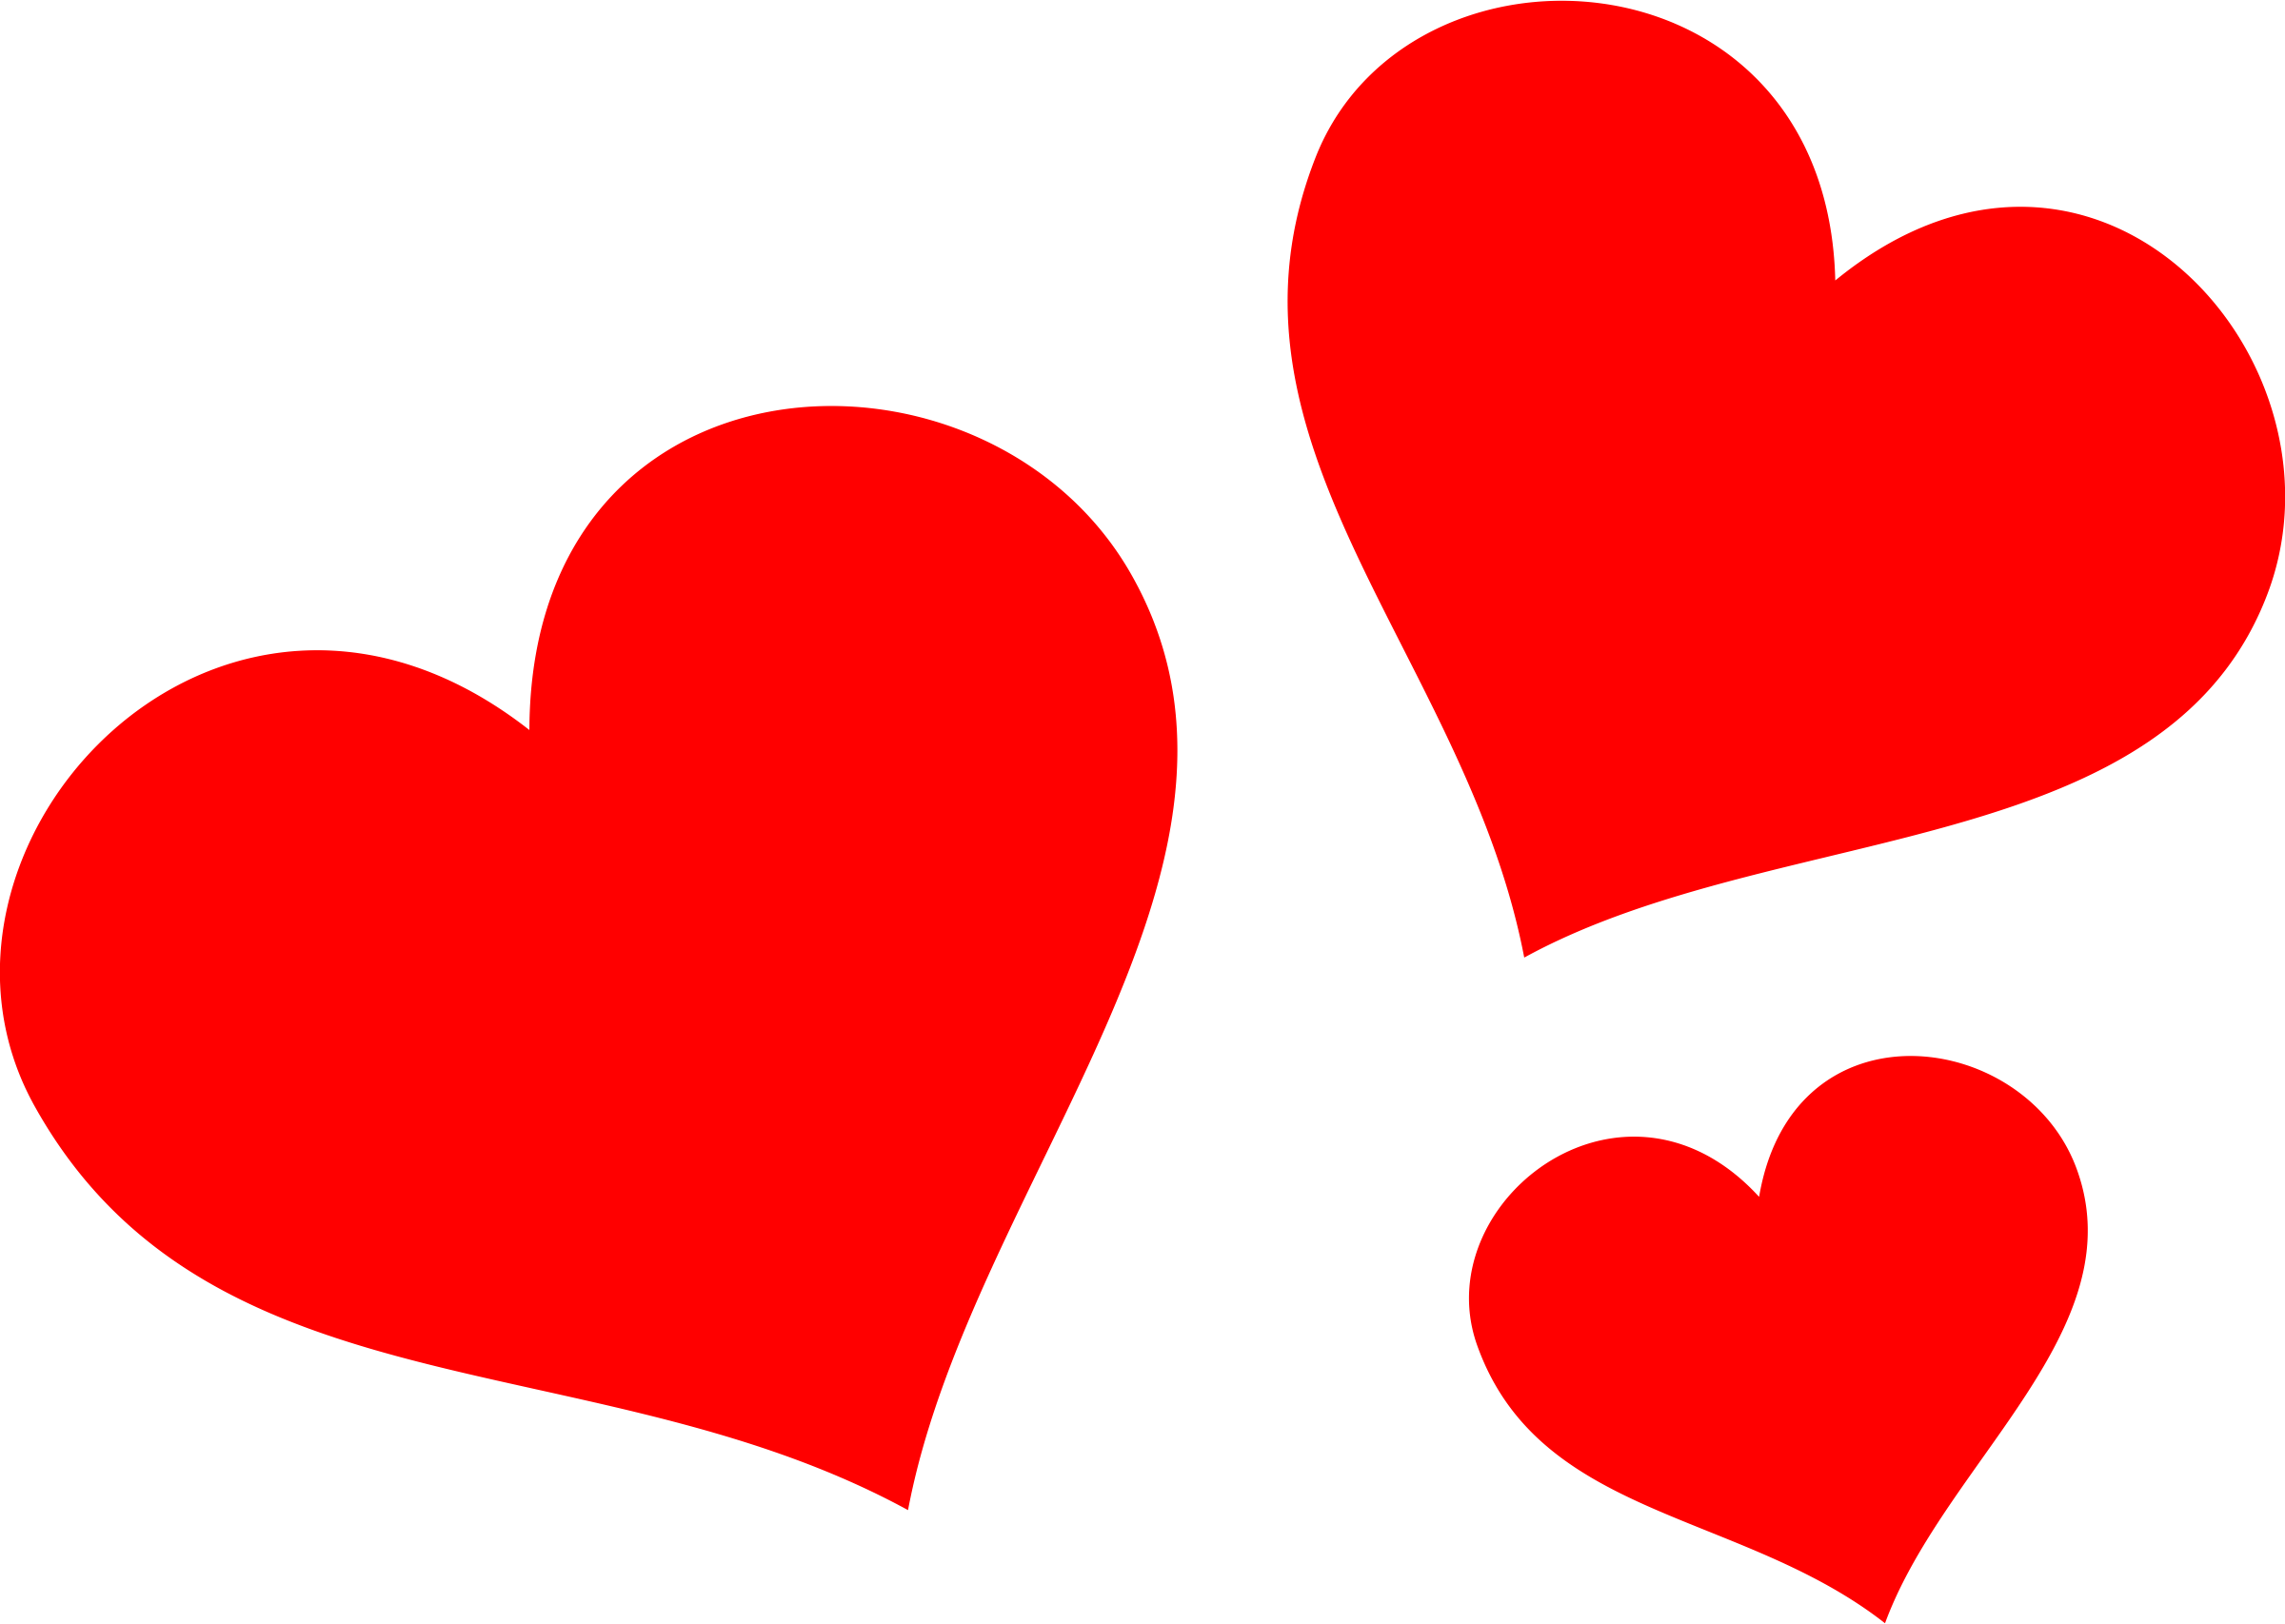 Clipart heart png picture free download Heart PNG free images, download picture free download